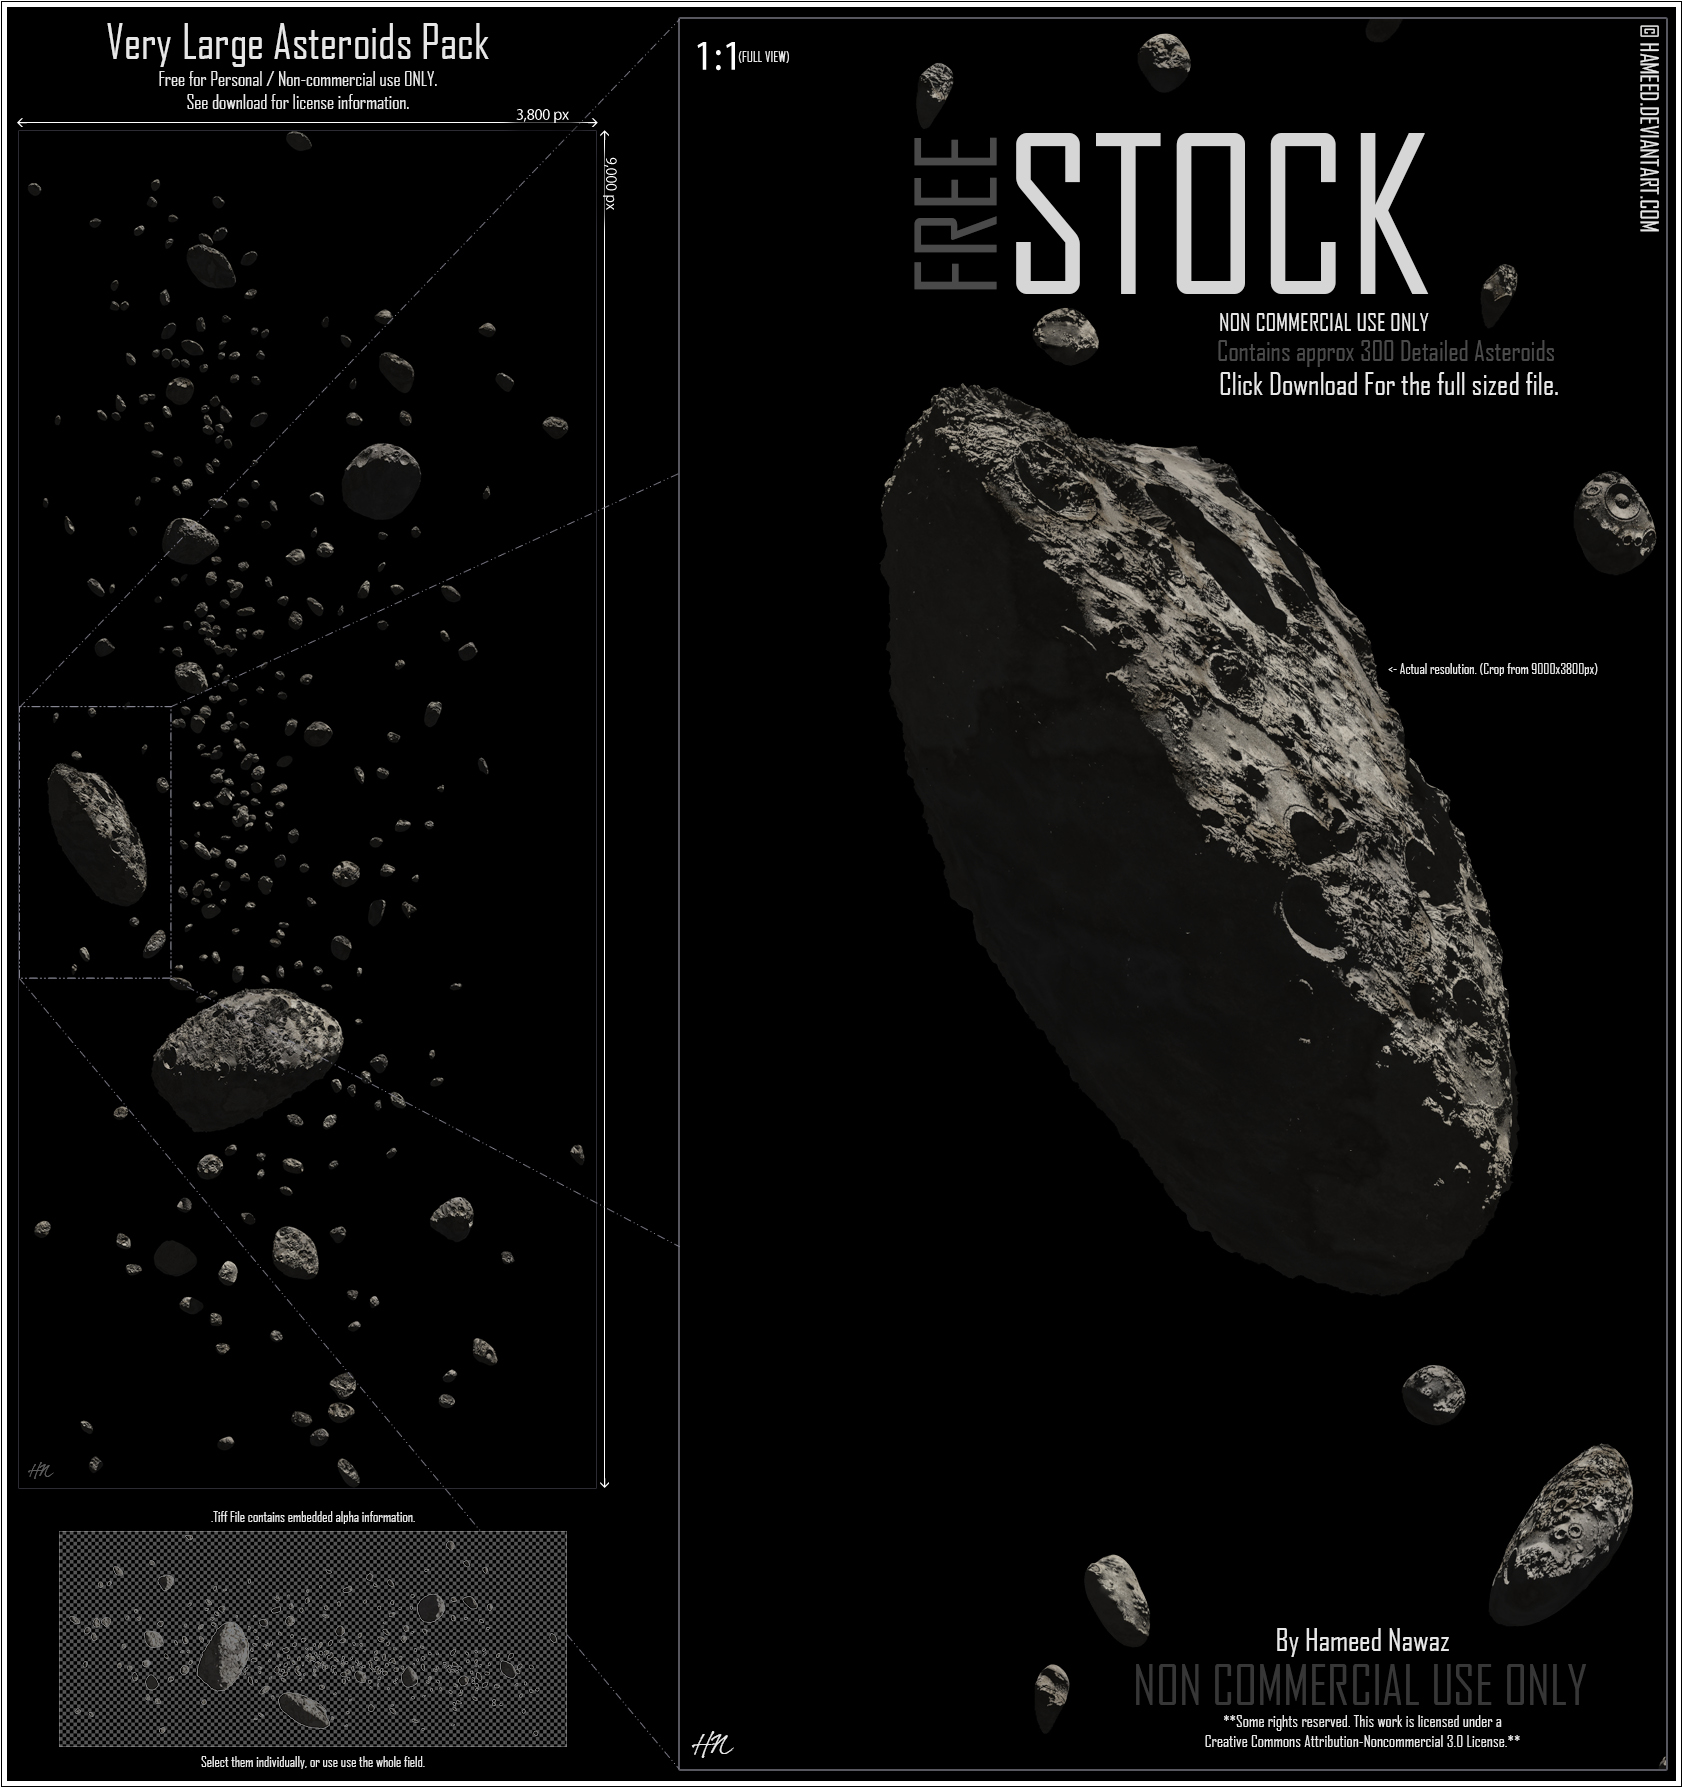 Very Large Asteroids Pack